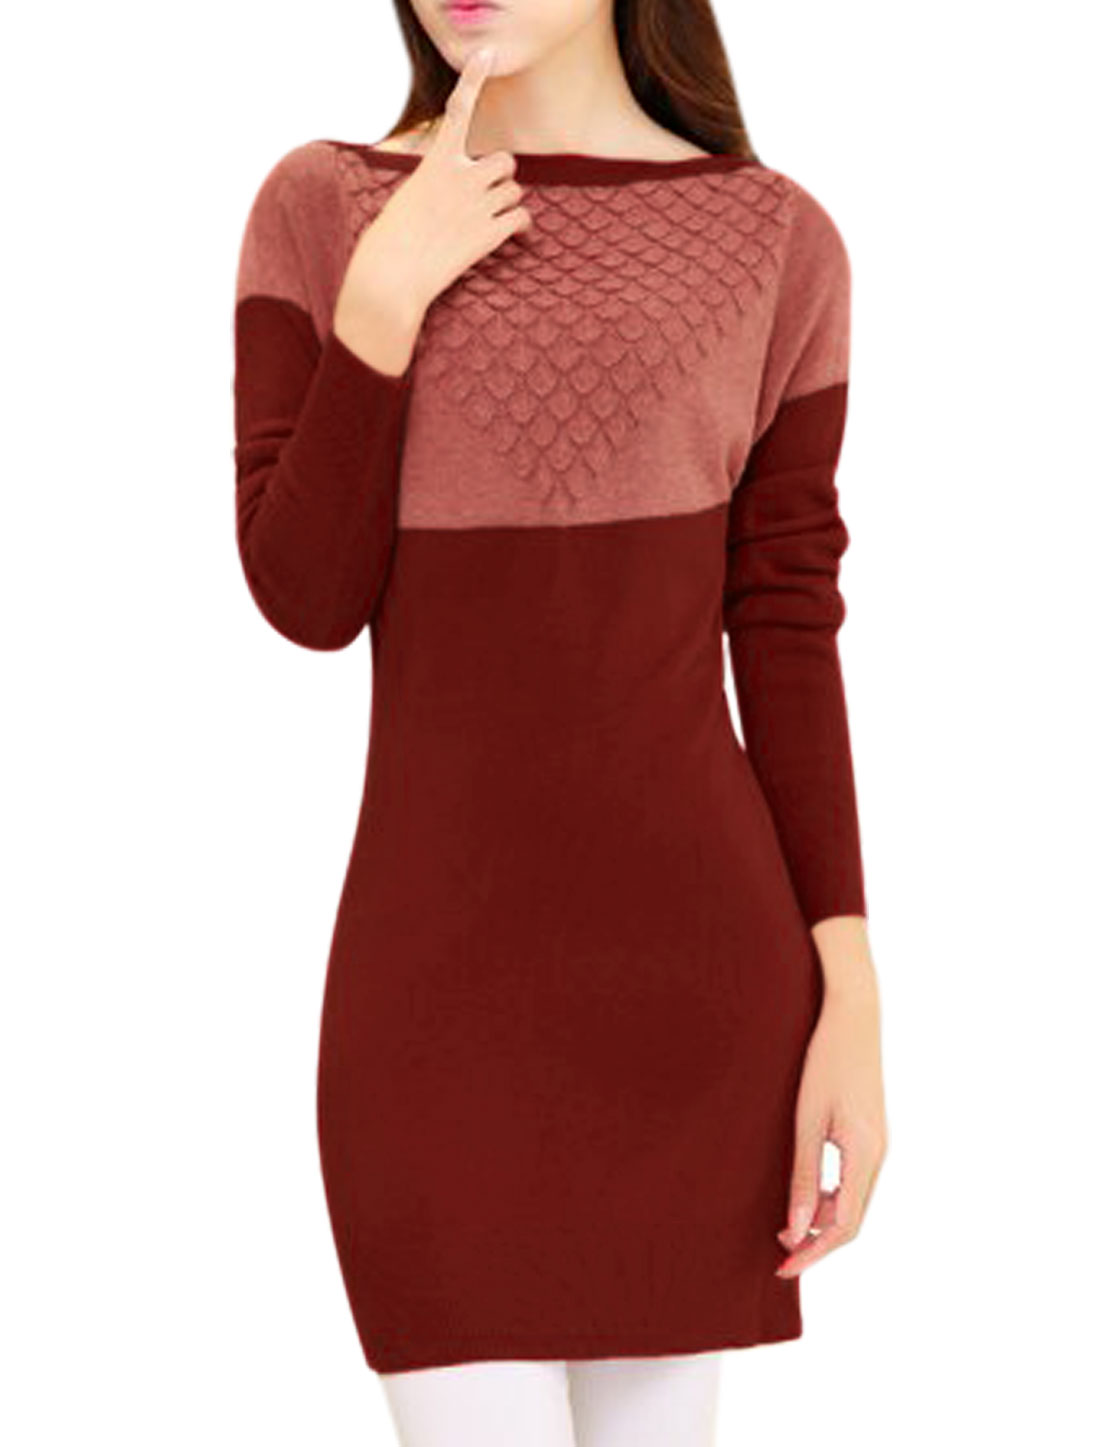 Lady Boat Neck Long Sleeve Stretchy Leisure Knitted Top Burgundy Light Red S